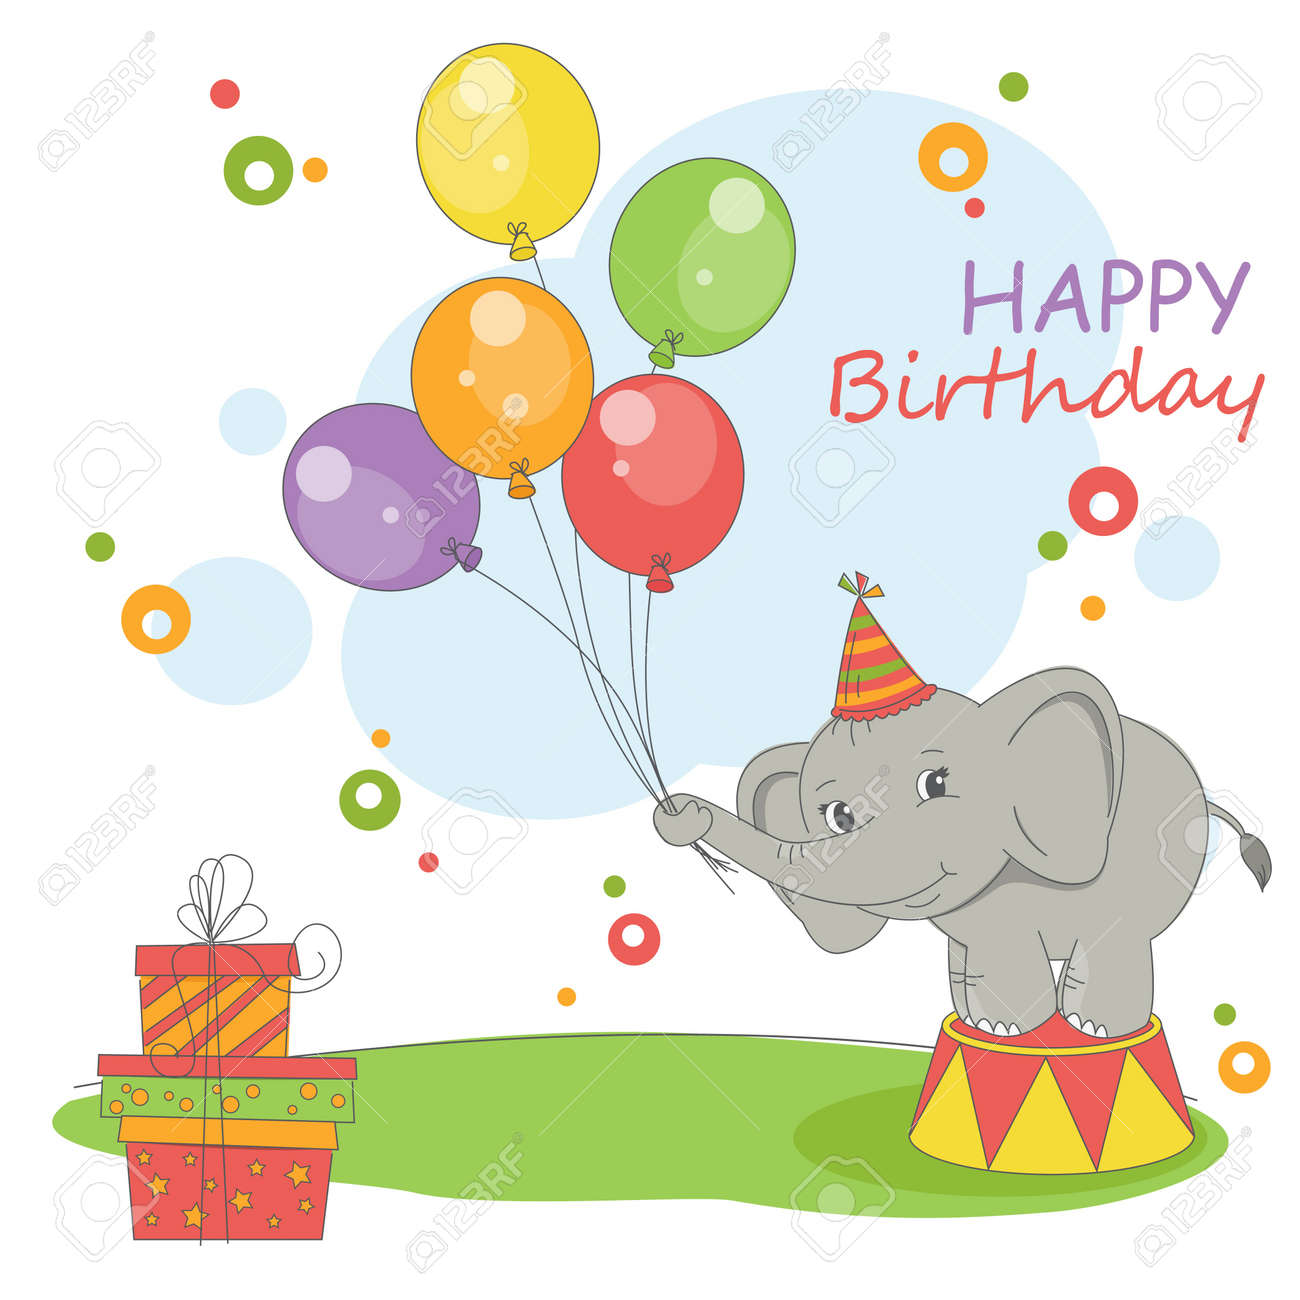 Happy Birthday Card Colorful Illustration With Cute Elephant Balloons And Gift Stock Vector